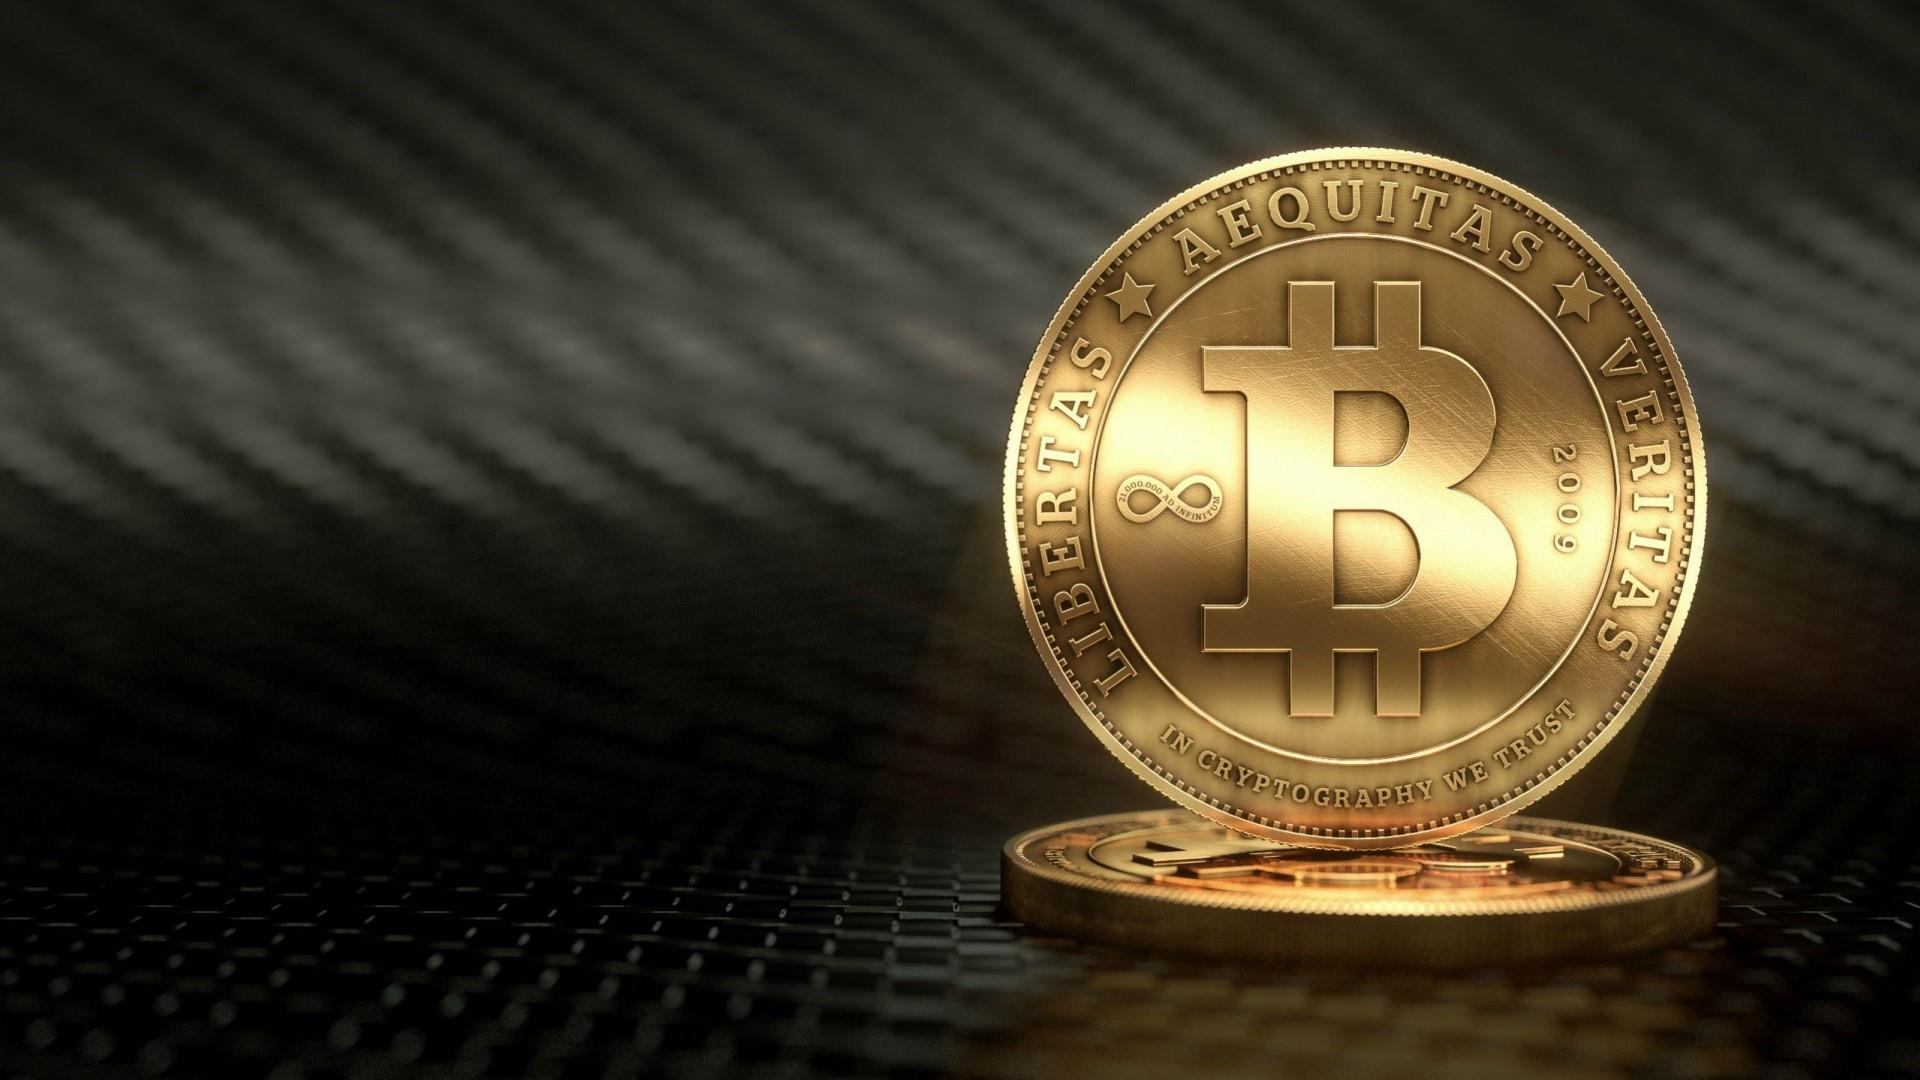 1920x1080 Gold Bitcoin Wallpaper | Wallpaper Studio 10 | Tens of thousands HD ...